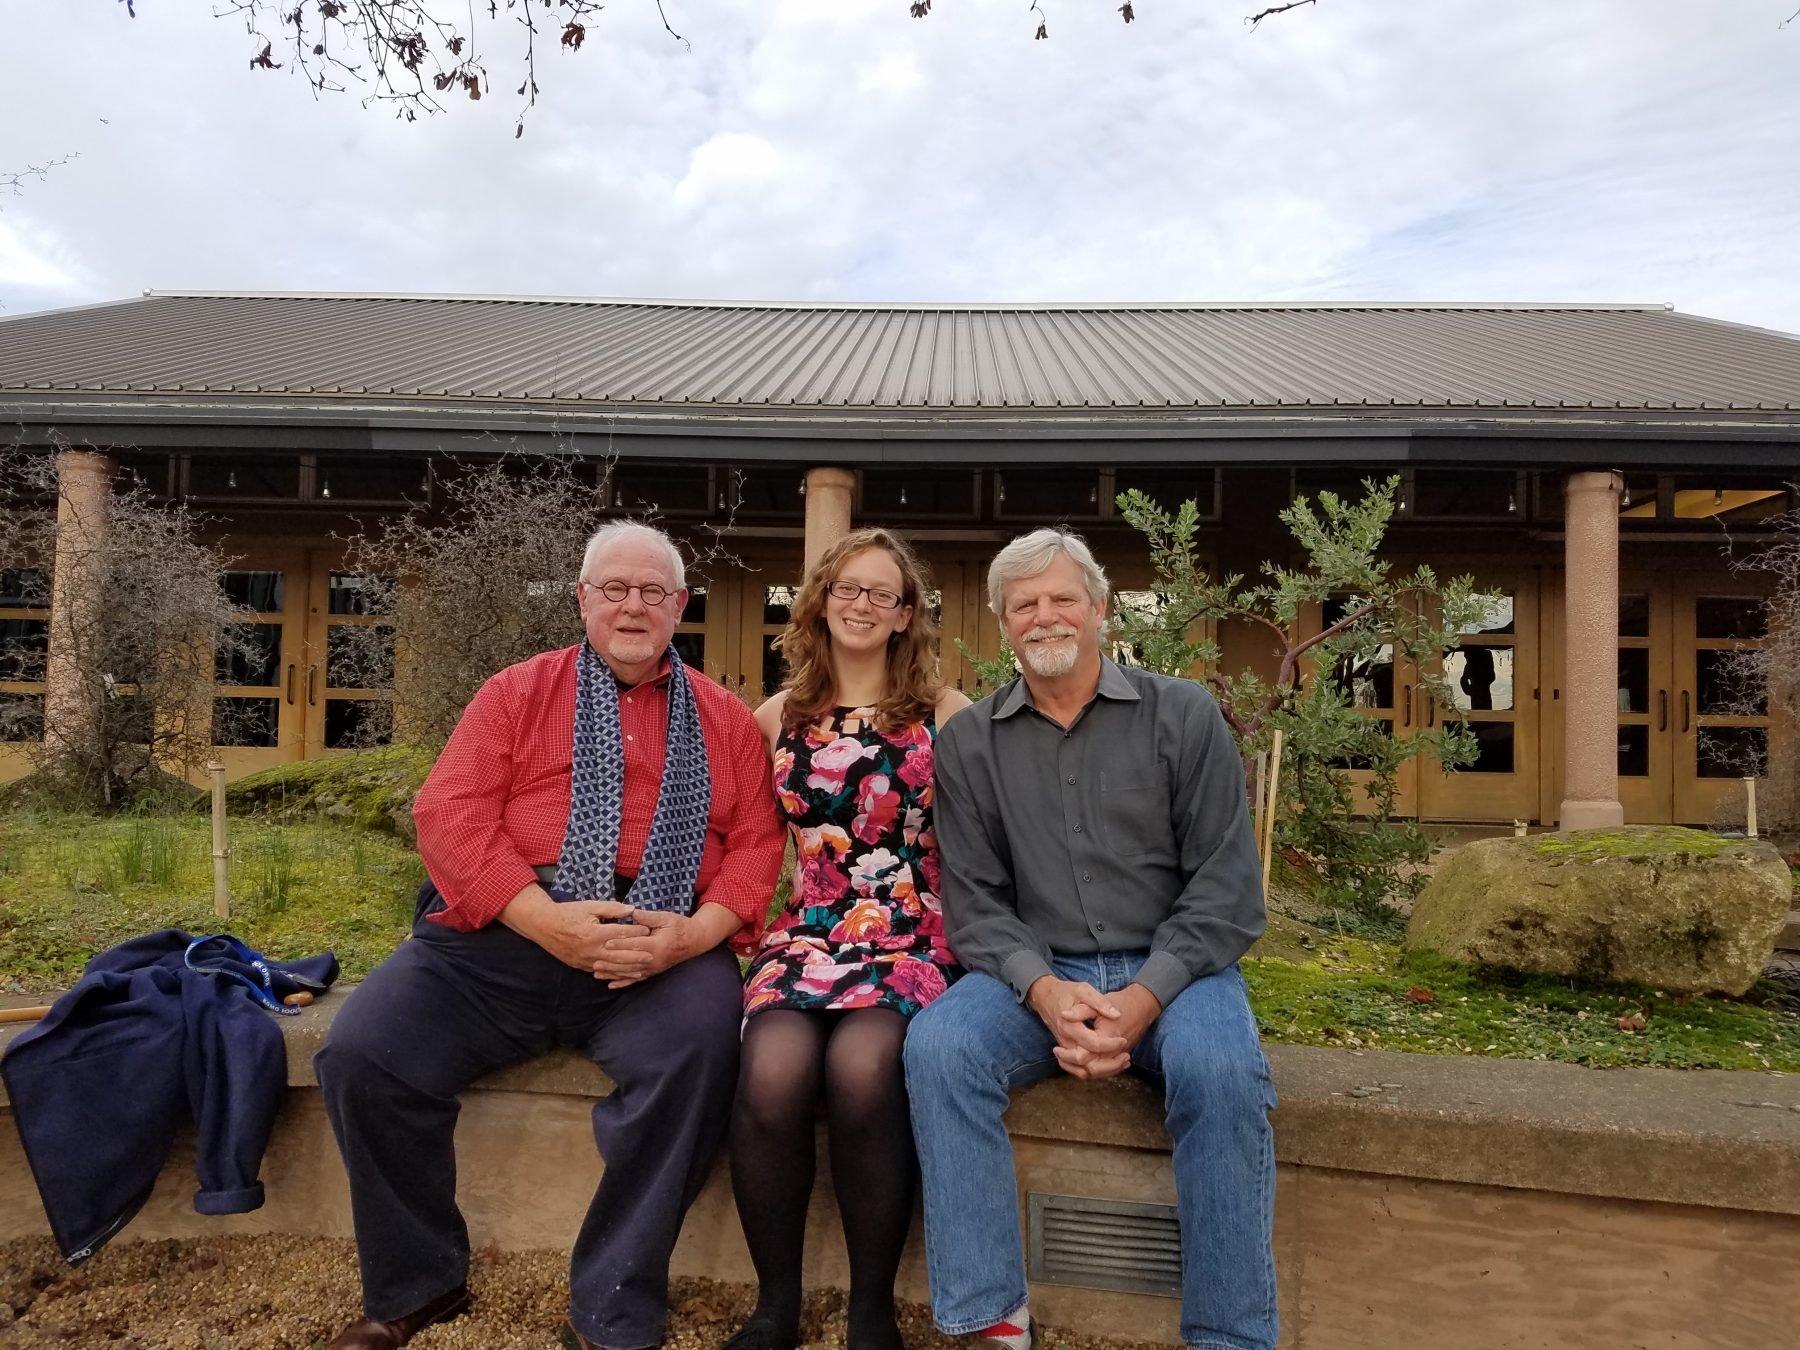 Pictured are Dr. John A. Wott, Director emeritus, UW Botanic Gardens; Kelsey Taylor, recipient; and Fred Hoyt, Interim Director, UW Botanic Gardens.